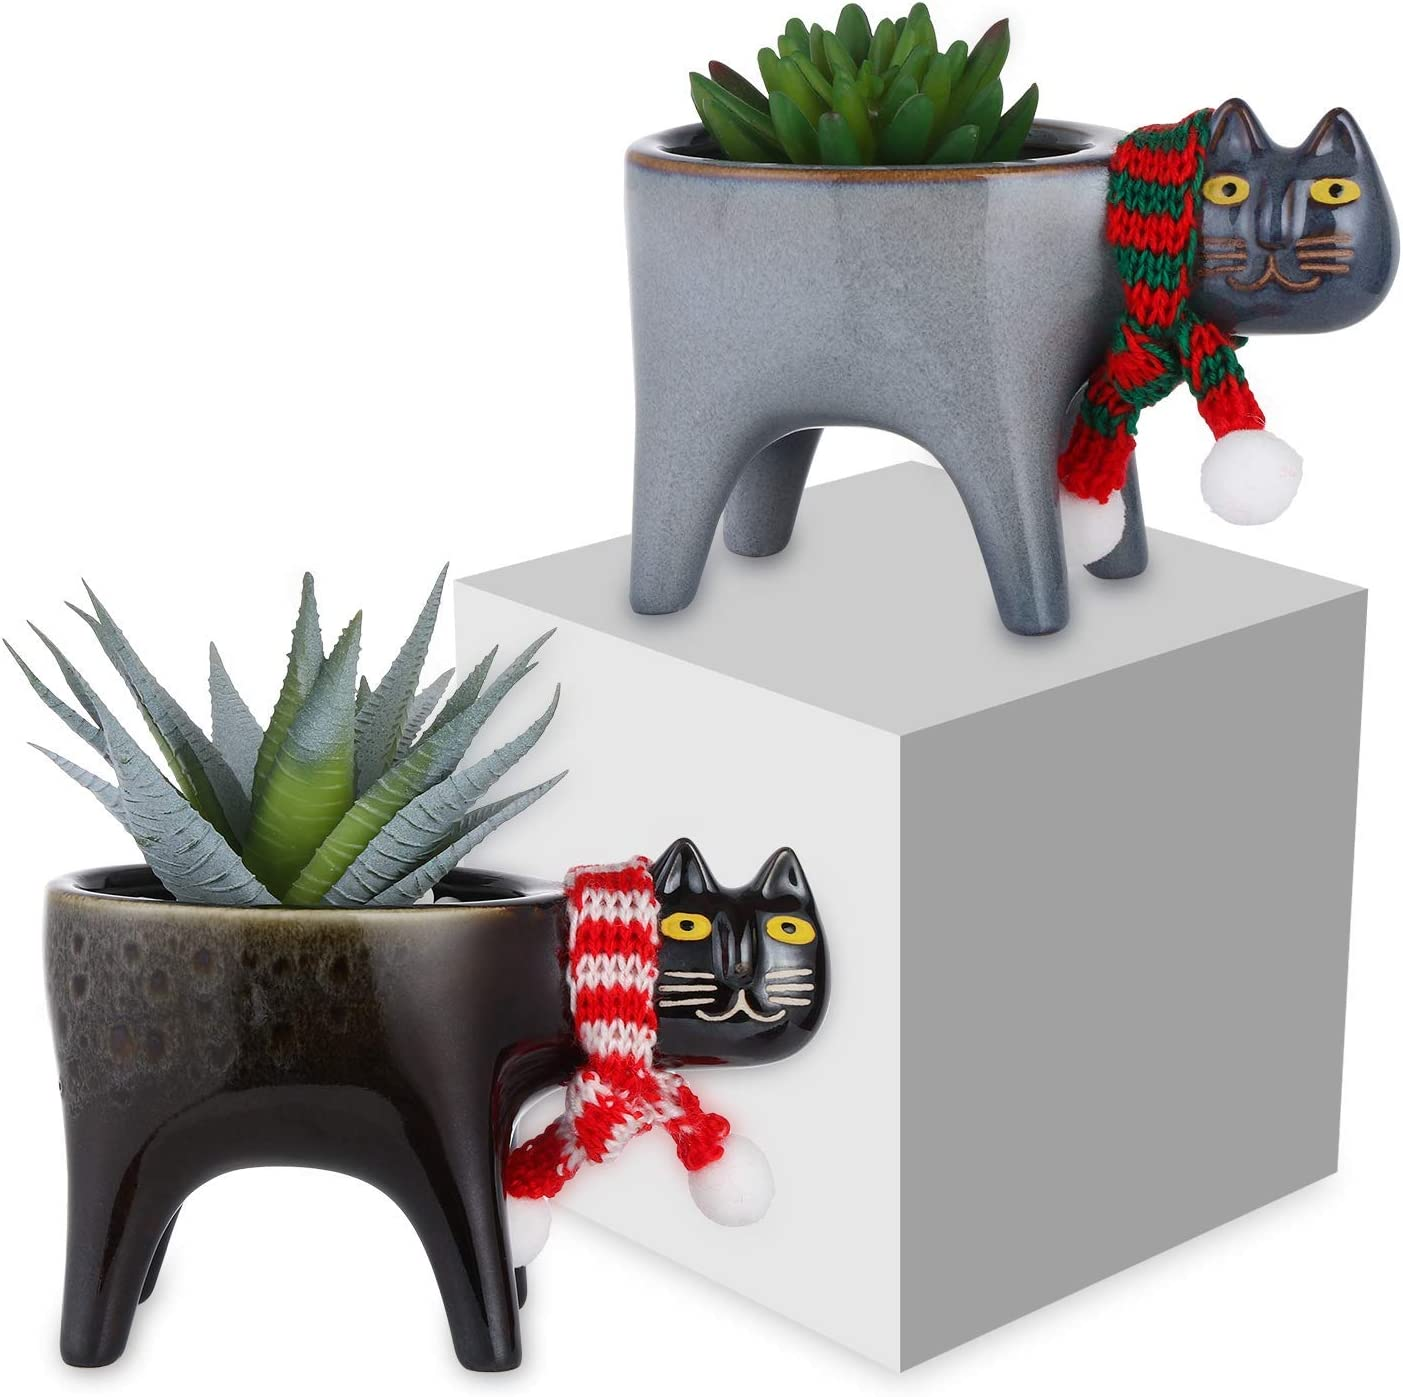 Ovida 2 Pack Popular brand 5.9 Inch Cat Planters Succulent Animal Succ Planter Recommended